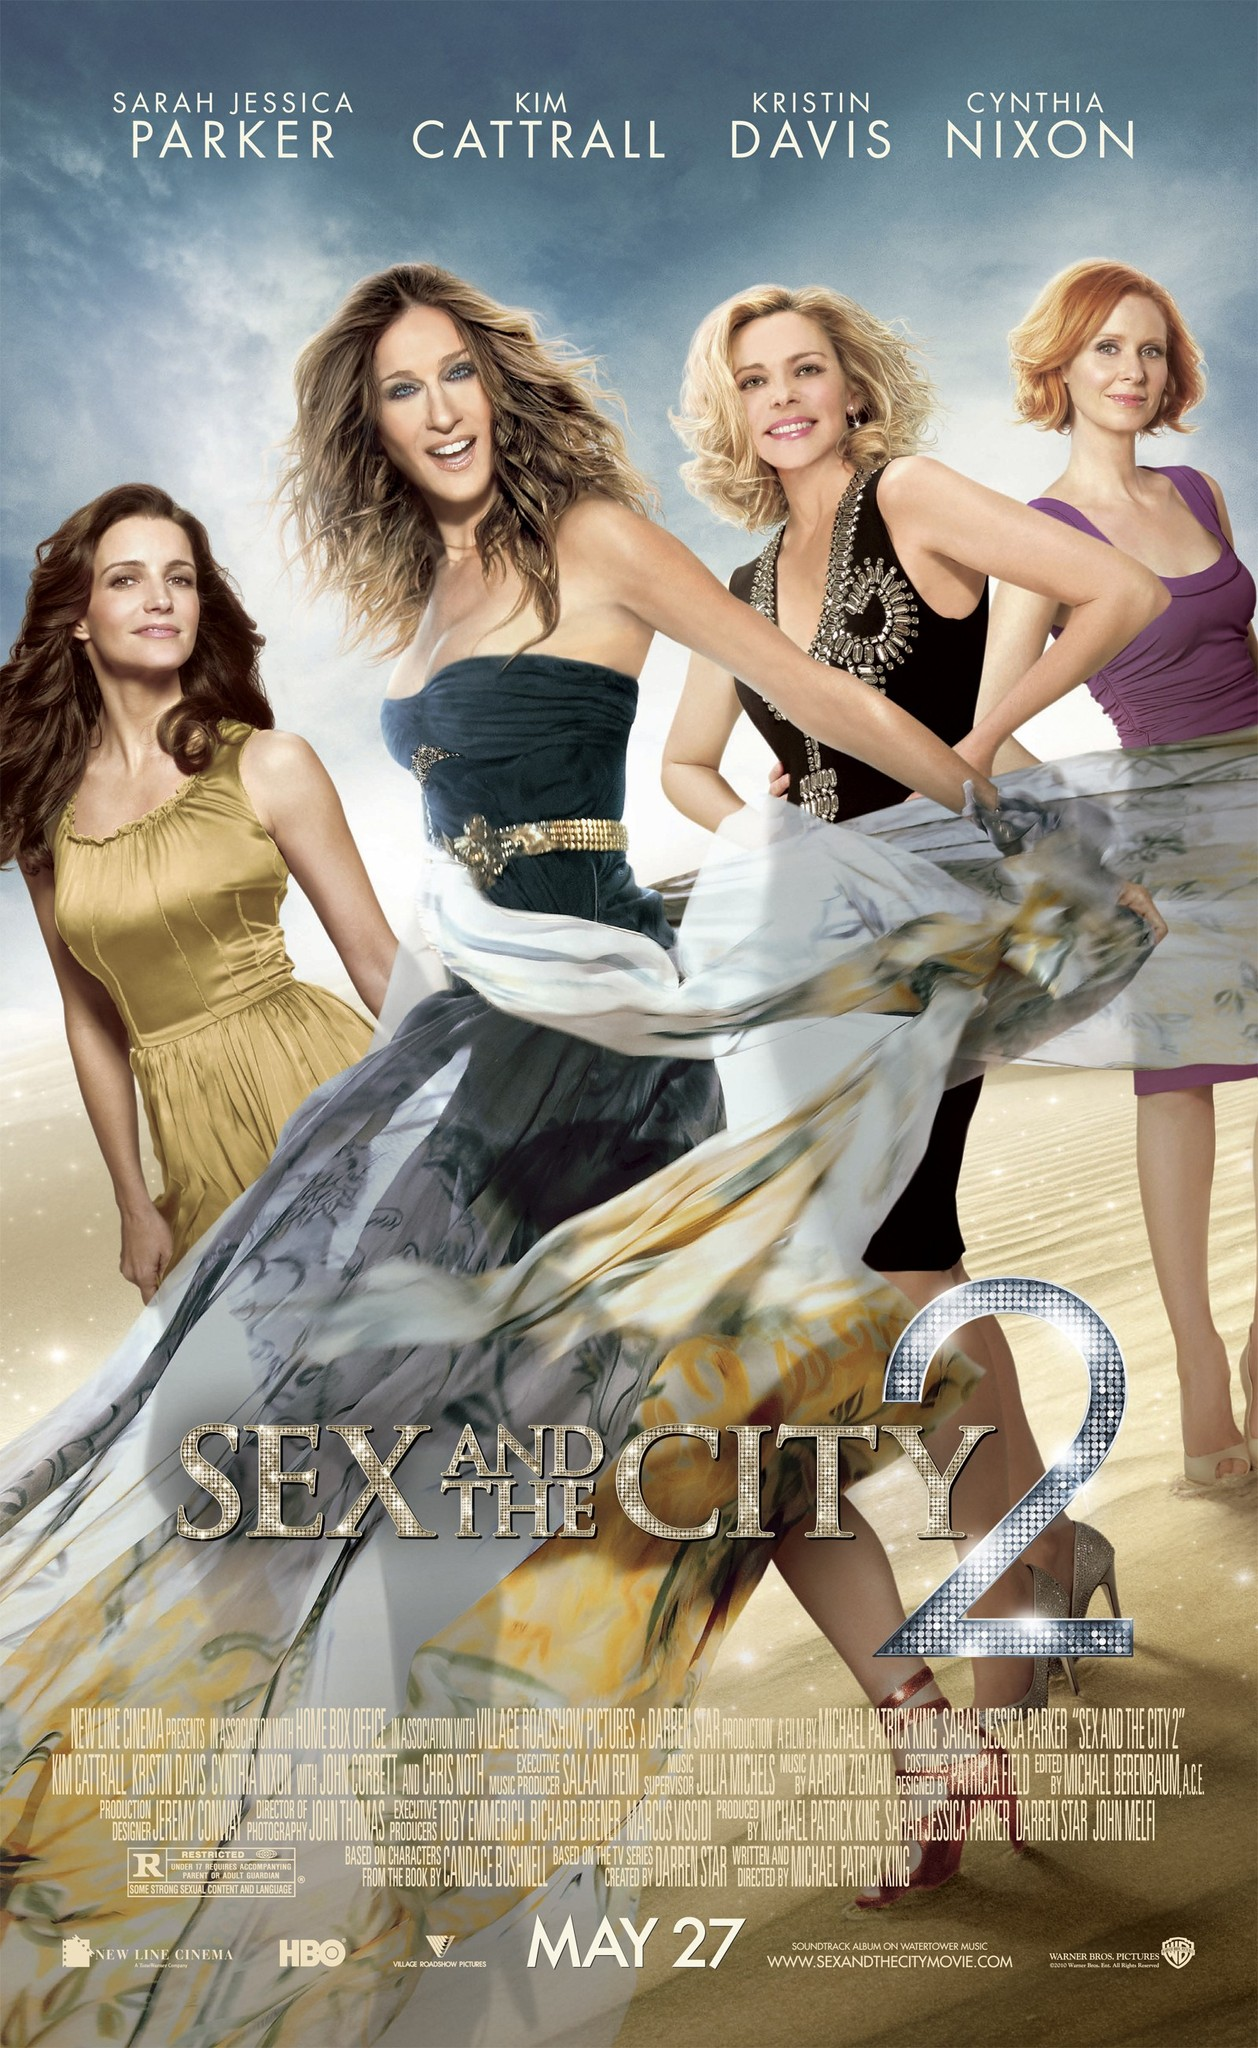 Sex and the city th emovie